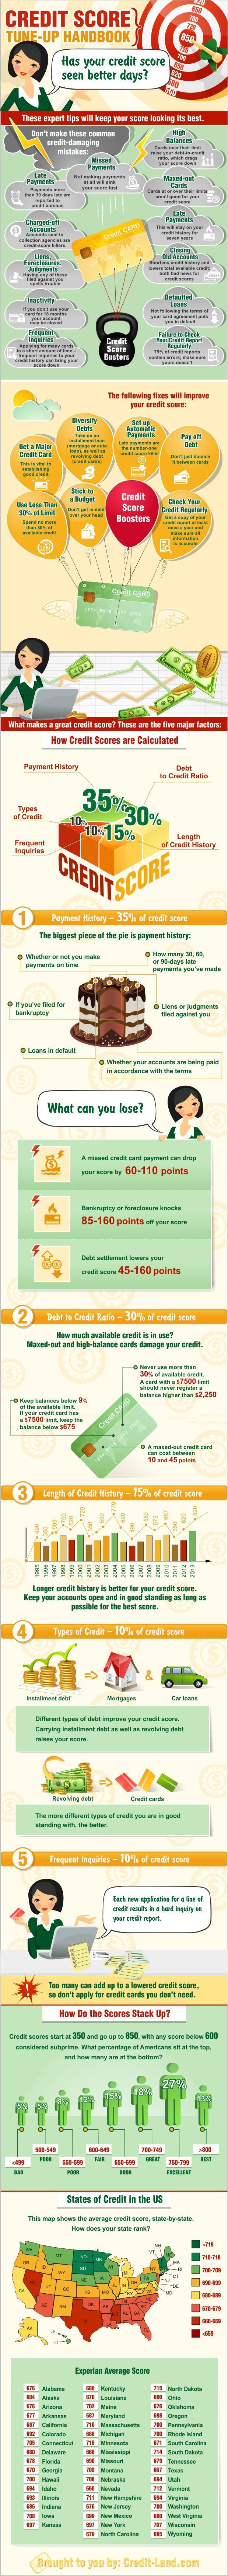 Credit Scores for Dummies (and Smart People) from http://thefrugalmodel.com Credit Scores, #CreditScores